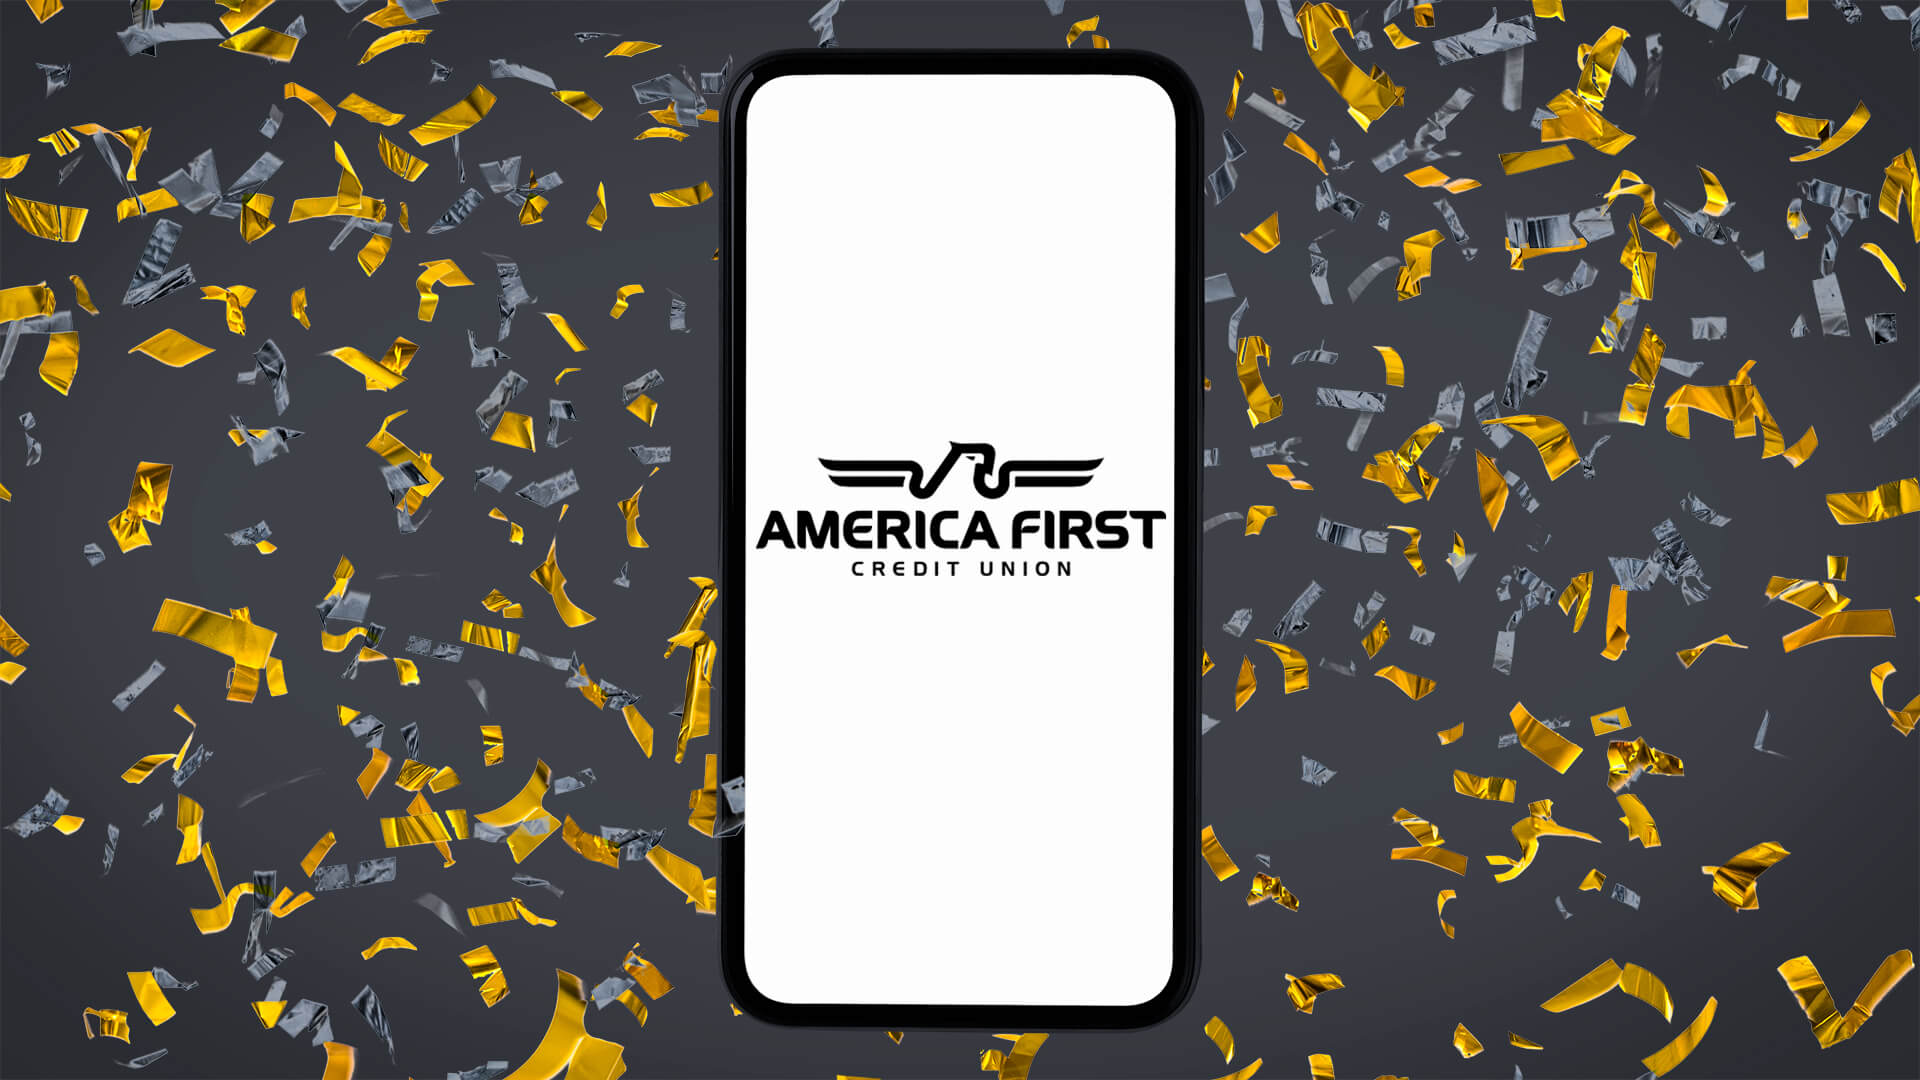 America First Credit Union promotion